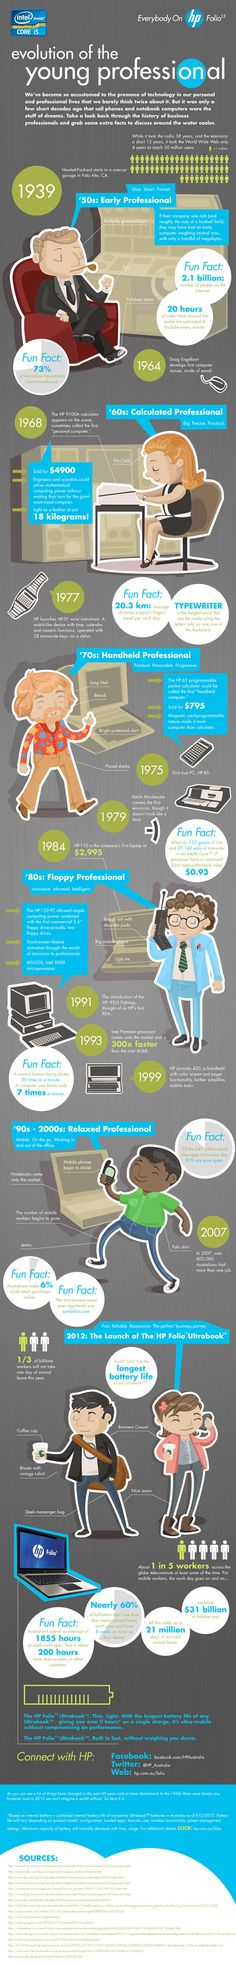 It was only a few short decades ago that cell phones and notebook computers were the stuff of dreams. Take a look back through the history of business professionals and grab some extra facts to discuss around the water coooler. (자세히 보면 많은 정보가 인포그래픽내에 포함이 되어 있네요! ) - http://twitter.com/hellosamyoo http://4sq.com/4sqLOVE